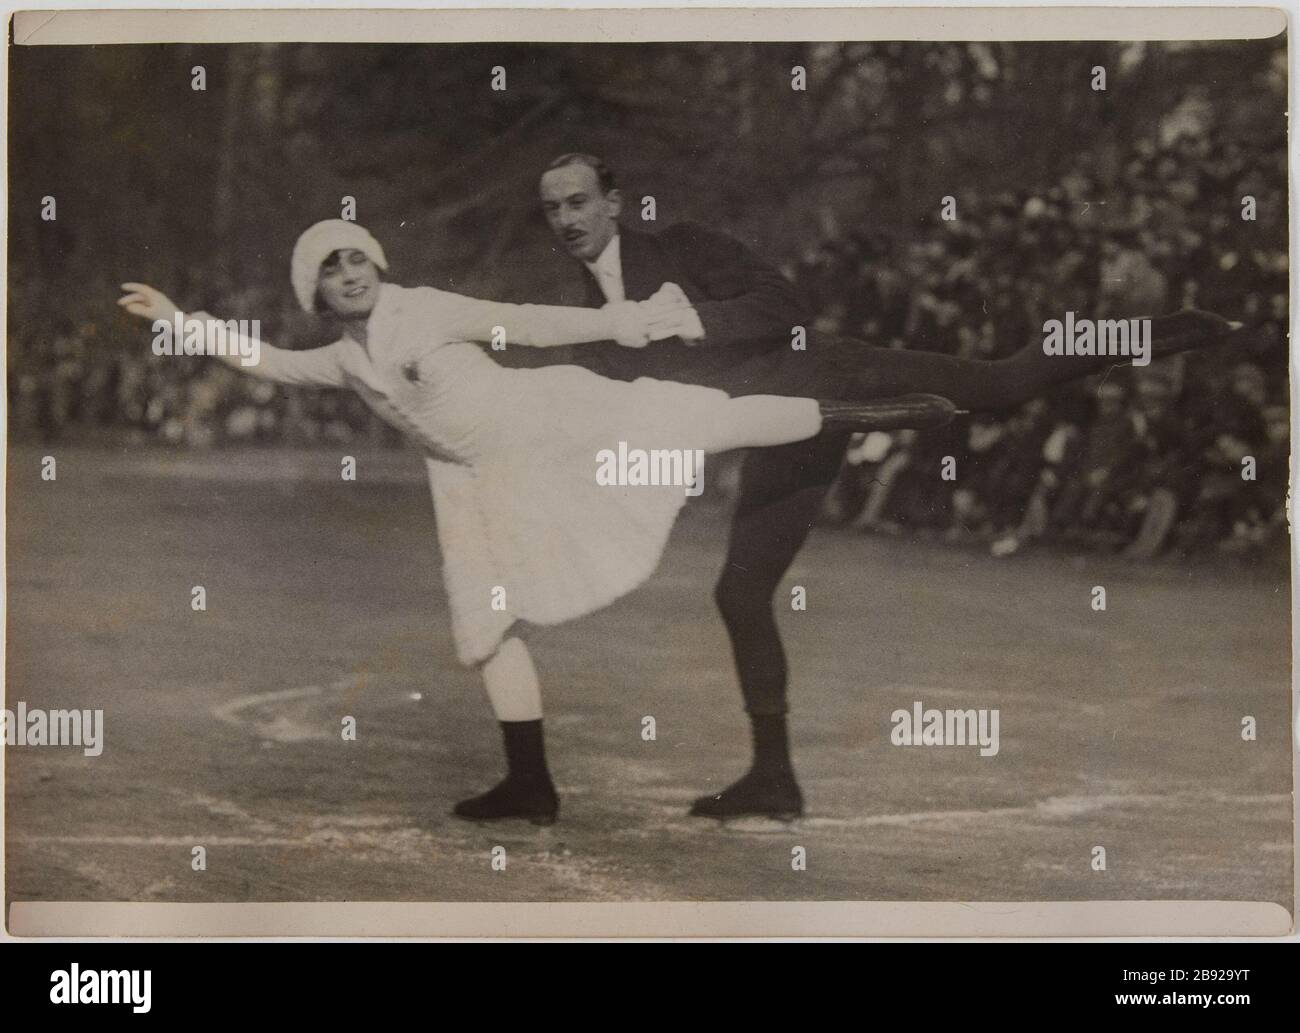 "Bois de Boulogne / Mr. Brunet and Ms. Joly. Mr. Brunet and Ms. Joly, world champion figure skating a figure running, Bois de Boulogne, 16th arrondissement, Paris. ""Monsieur Brunet et Mademoiselle Joly, champion du monde de patinage artistique exécutant une figure. Bois de Boulogne, Paris (XVIème arr.)"". Photographie de Georges Devred pour l'agence Rol. 17 février 1929. Paris, musée Carnavalet. Stock Photo"